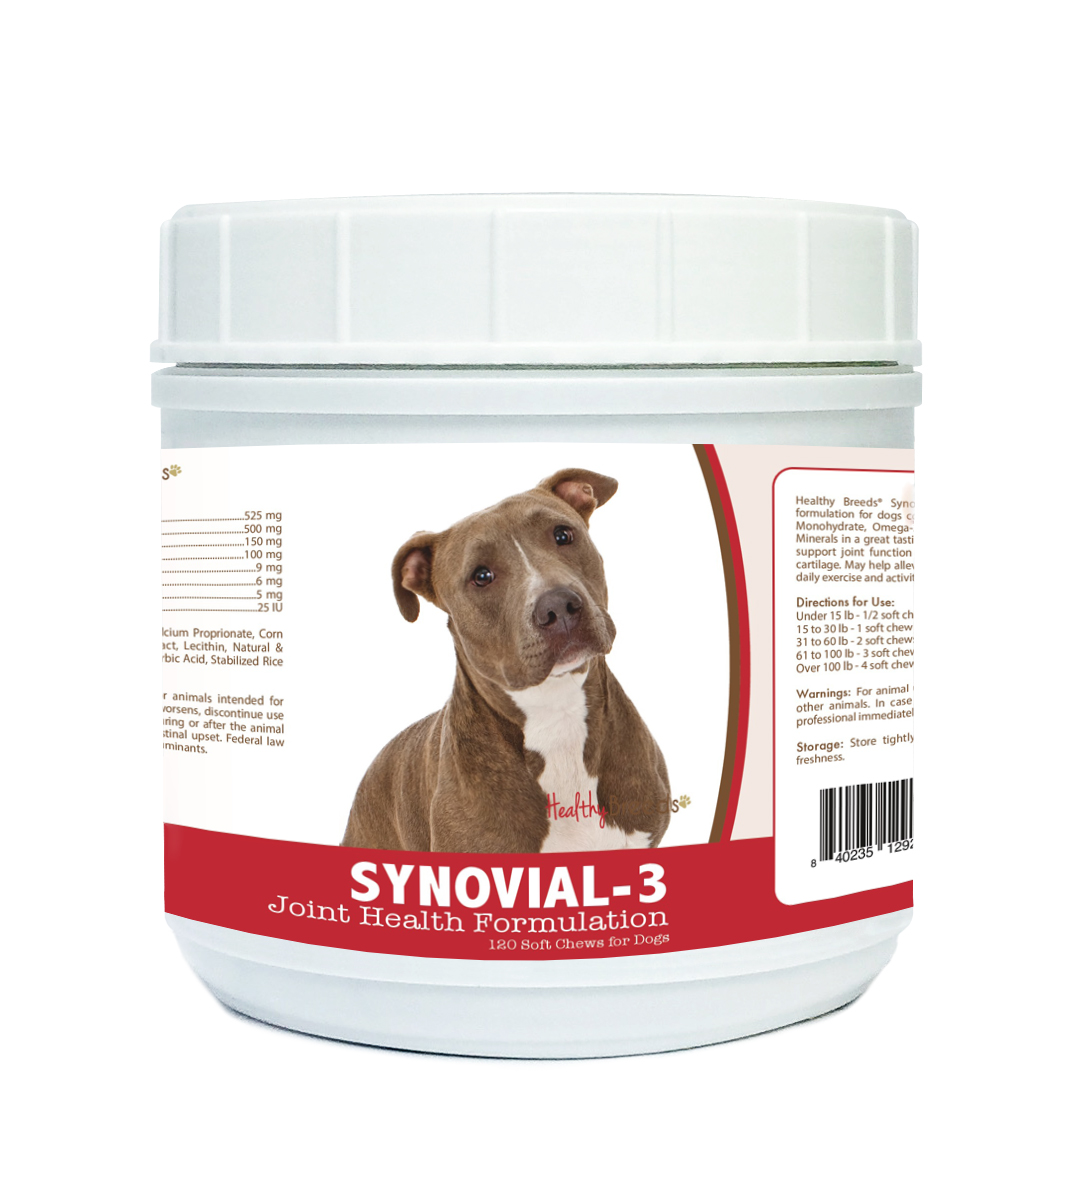 Healthy Breeds Synovial-3 Dog Hip and Joint Supplement for Pit Bull, Glucosamine Omega 3 Vitamin C & E Support, 120 Soft Chew Treats